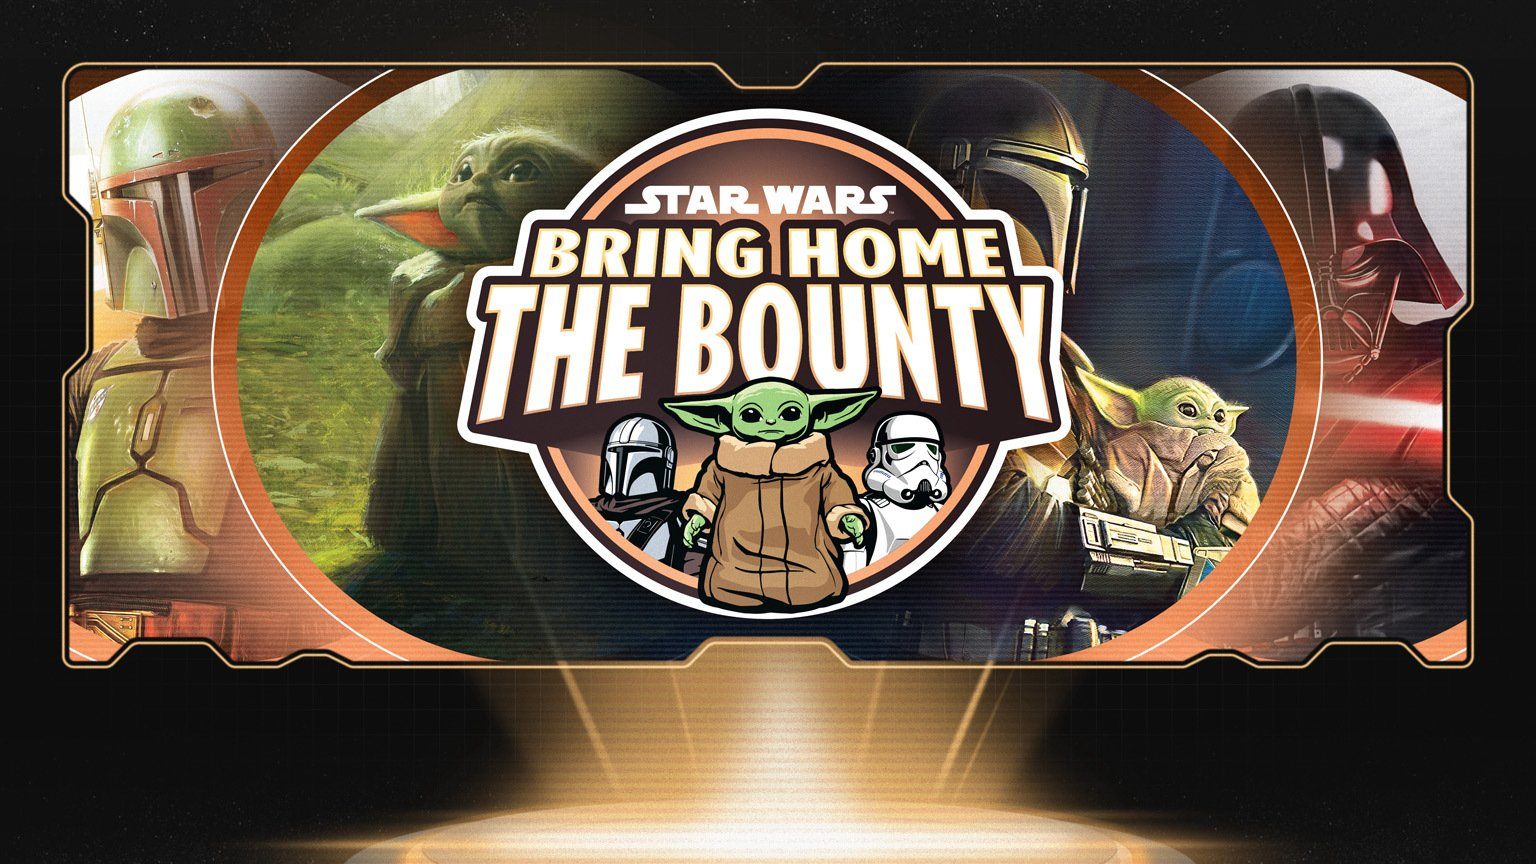 Bring Home the Bounty